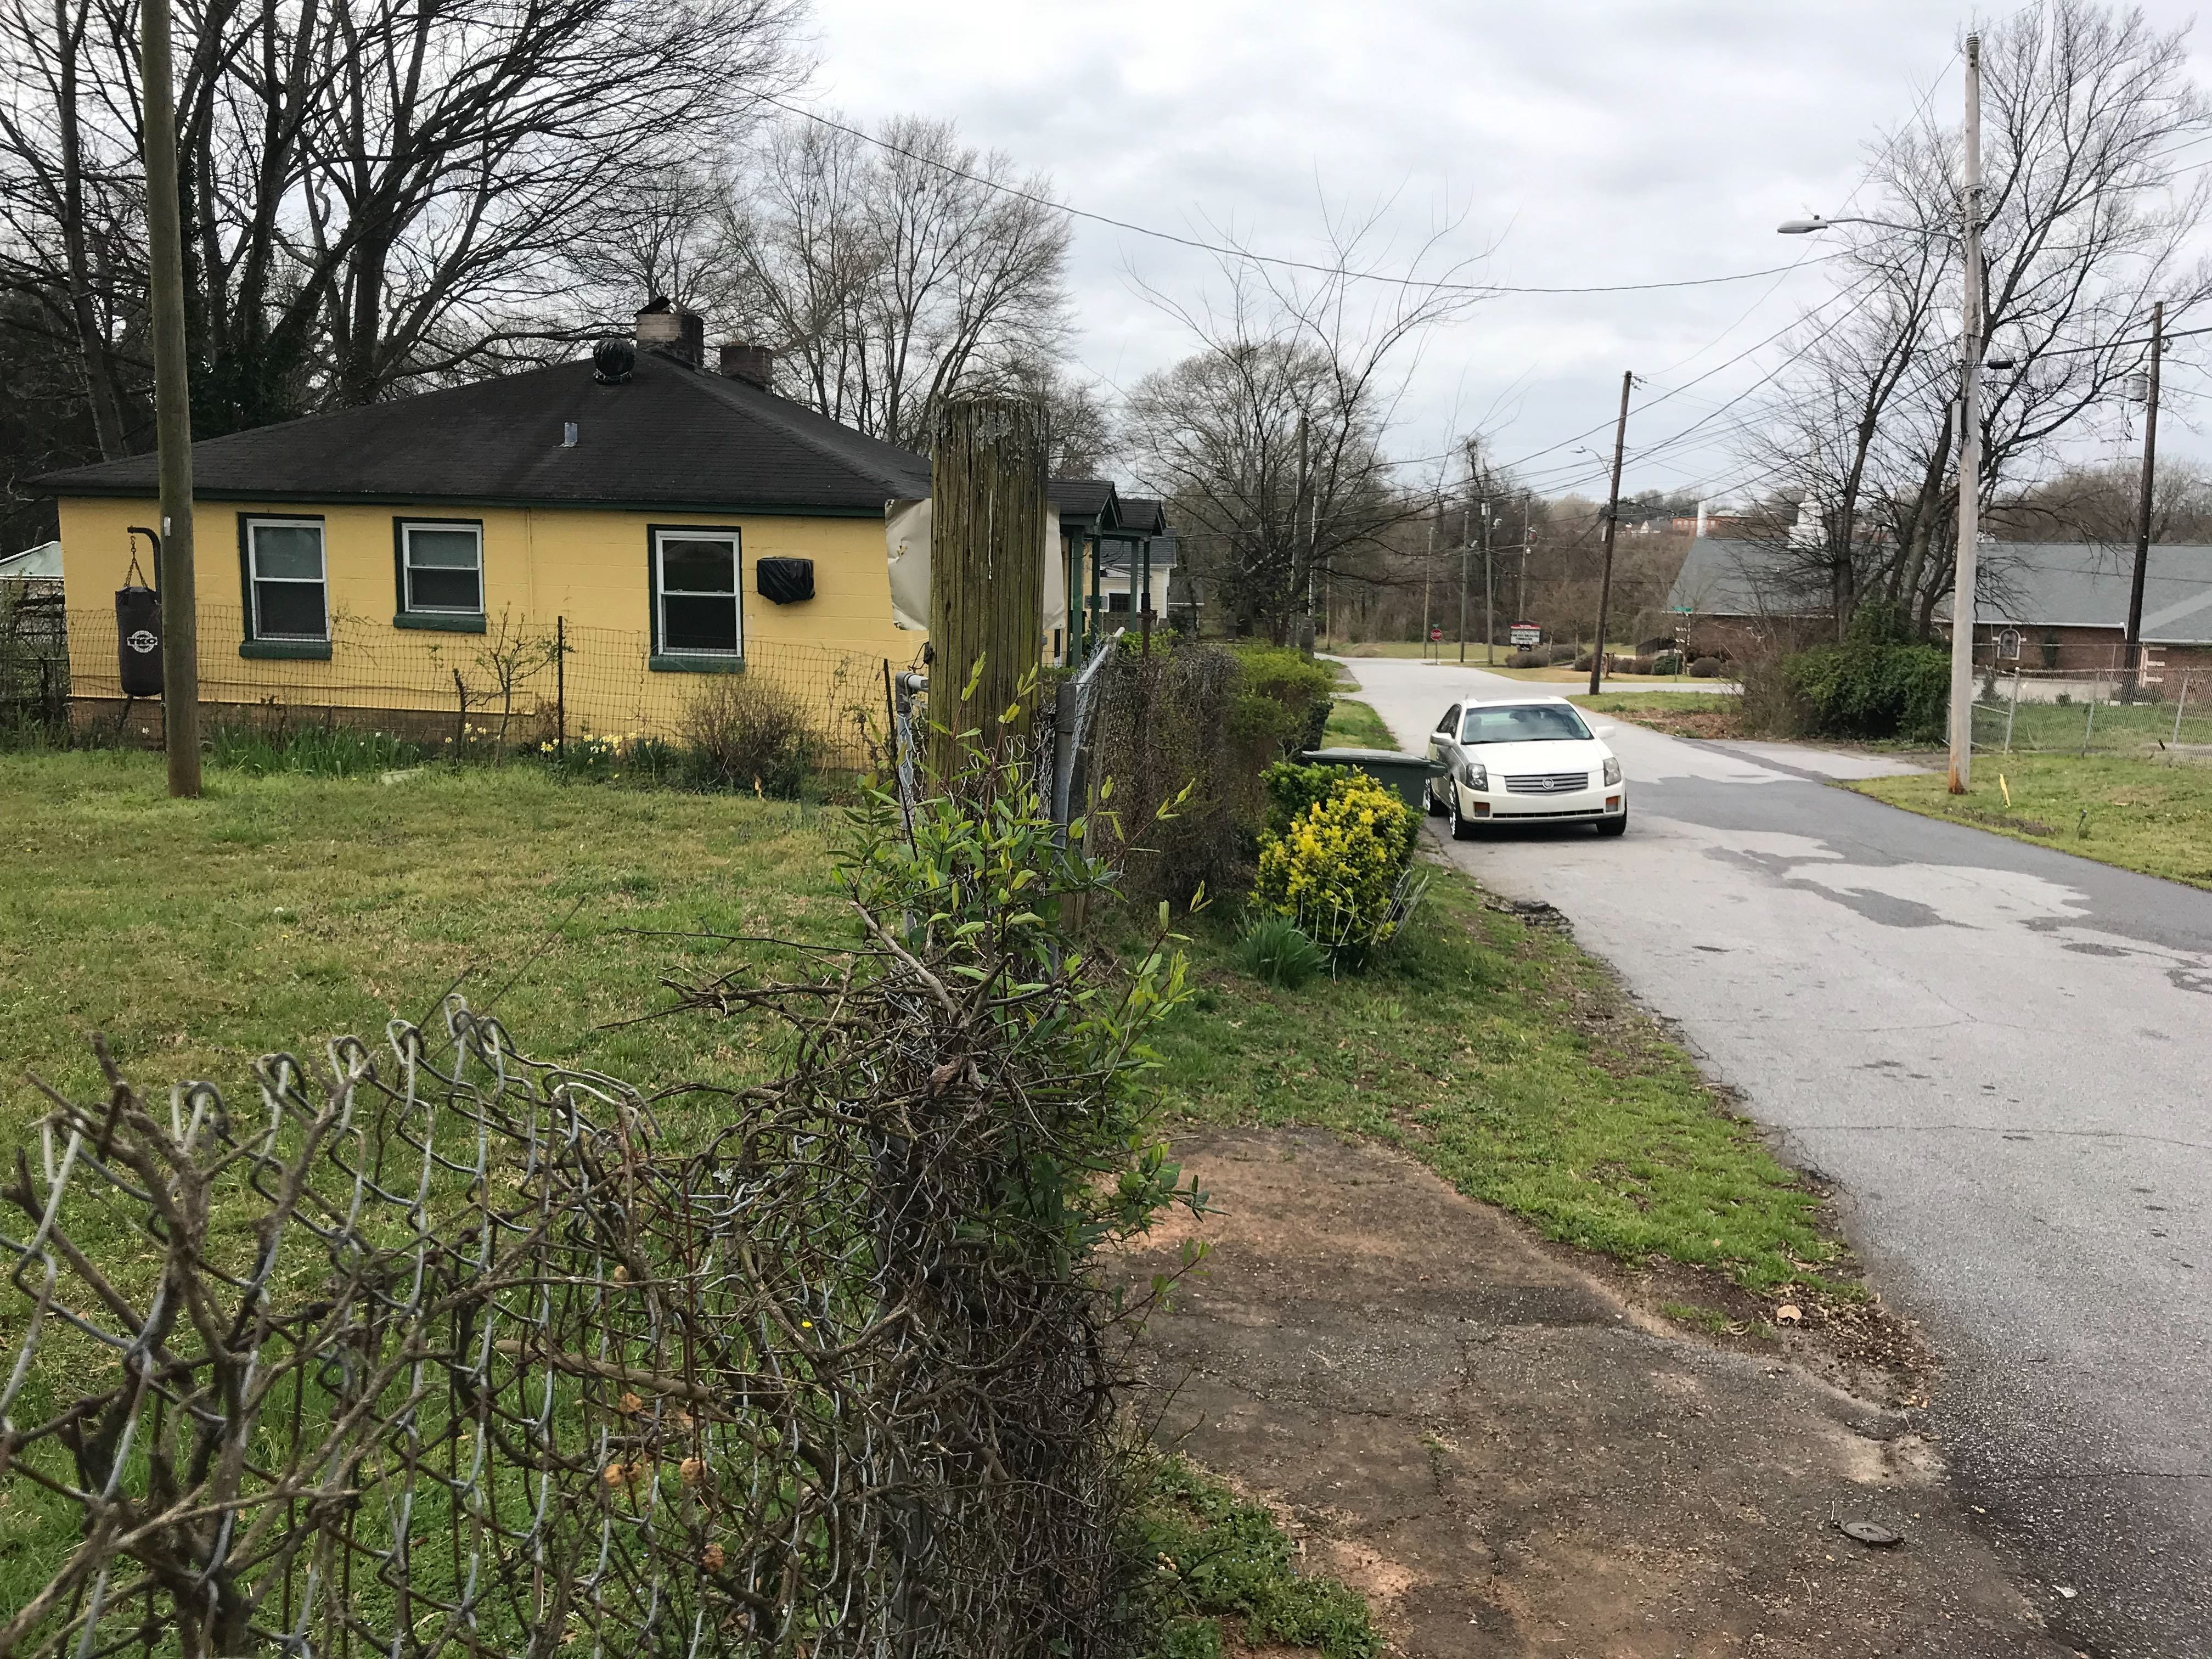 Police at the scene of an apparent attack by dogs in Greenville's Trescott Street on Thursday, March 14, 2019, that left an elderly couple injured